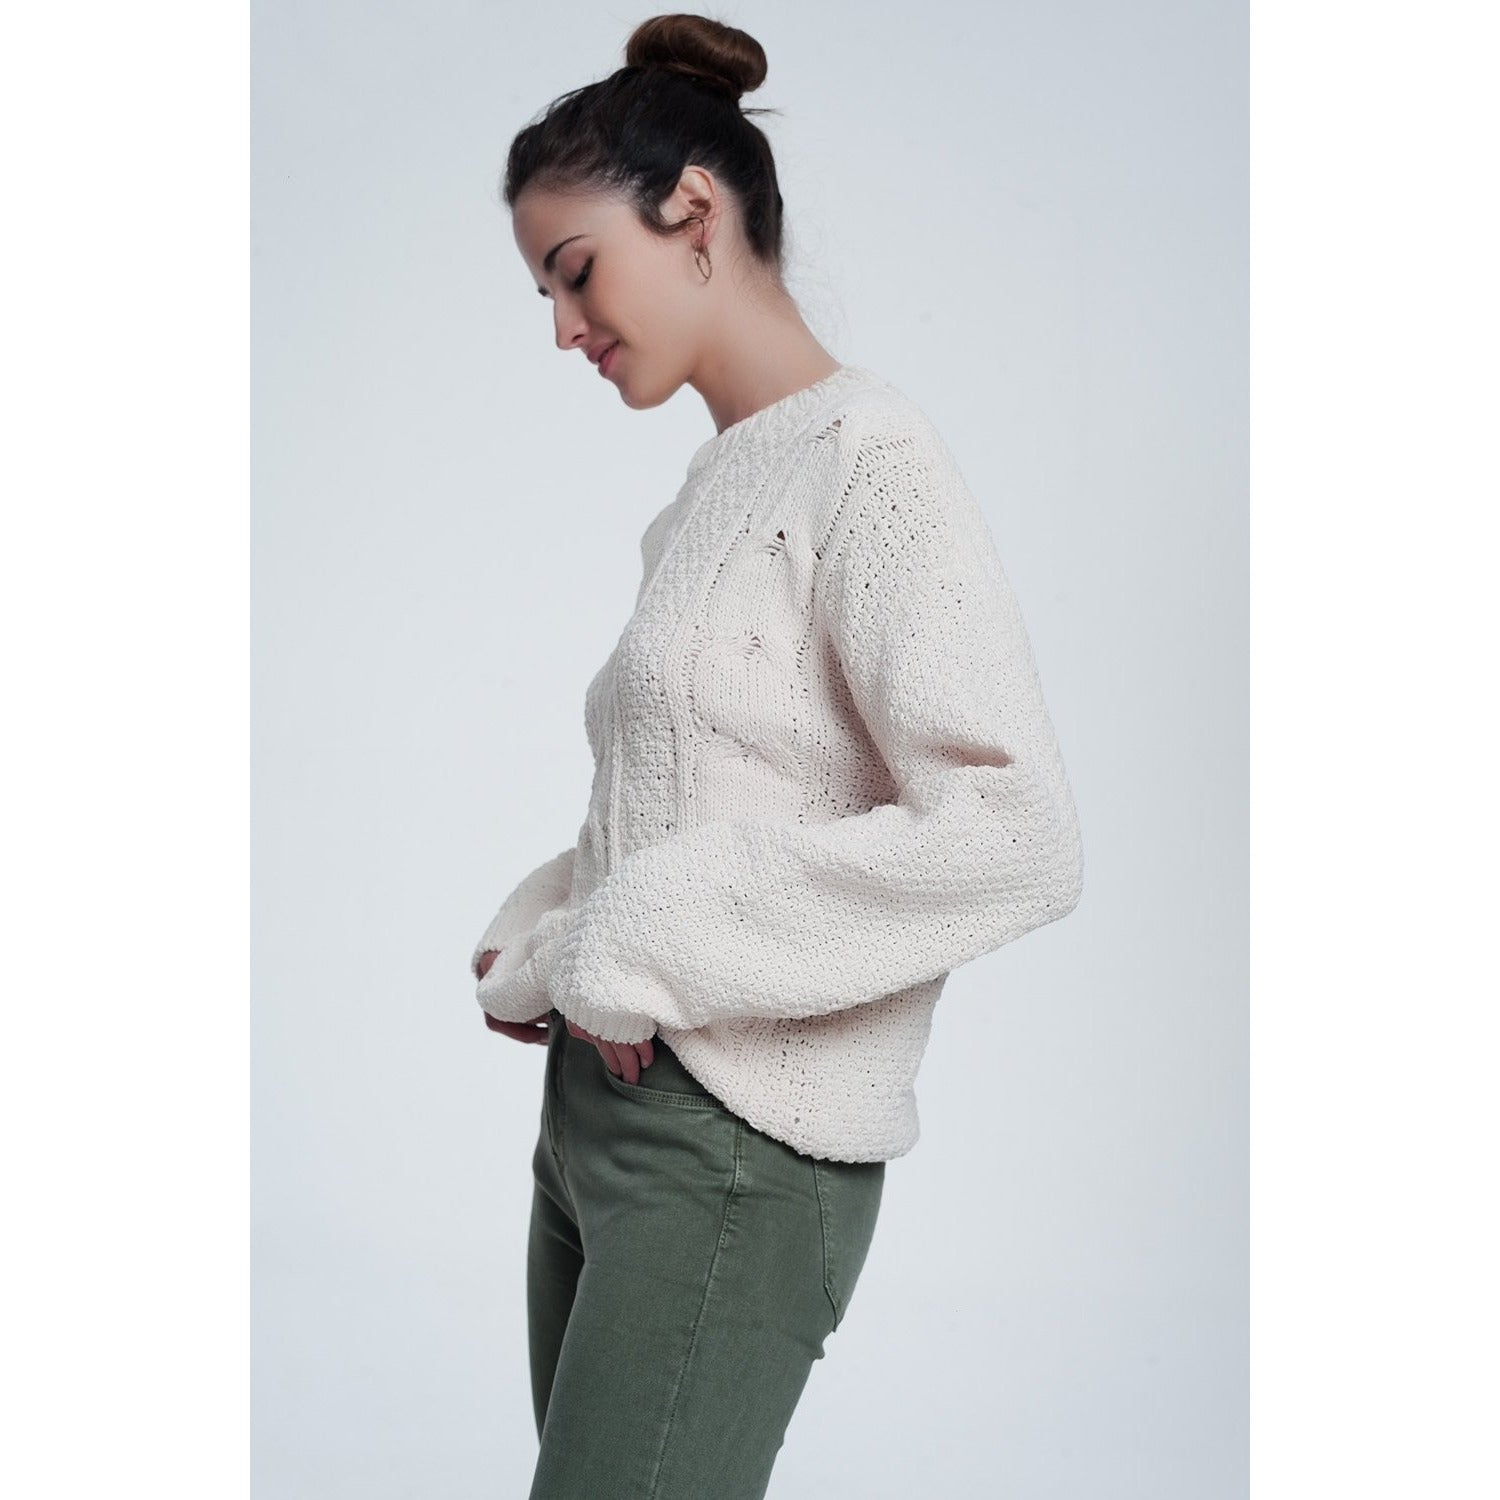 Woven Knit Sweater in Cream